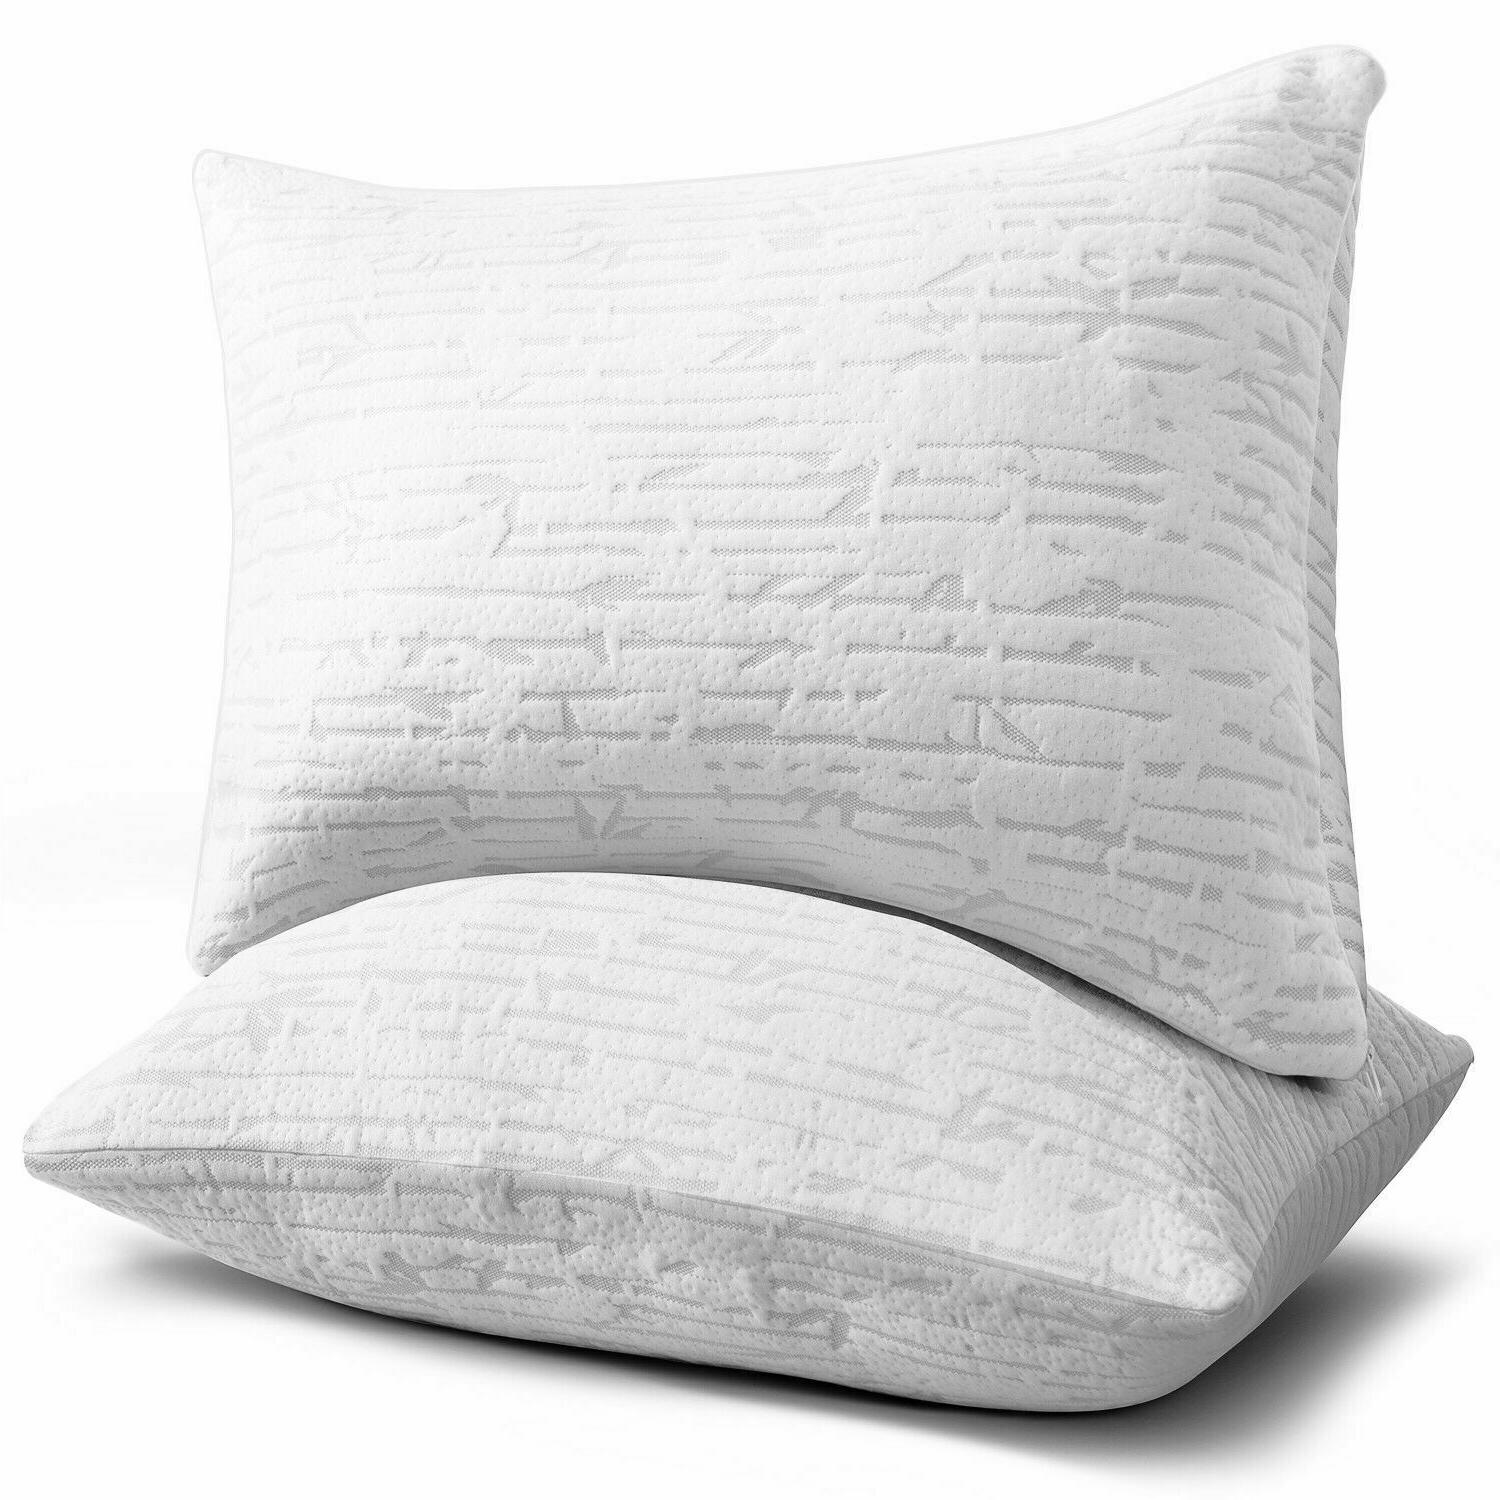 Memory Foam Luxurious Bamboo Gel Pillow by Clara Clark - Kin